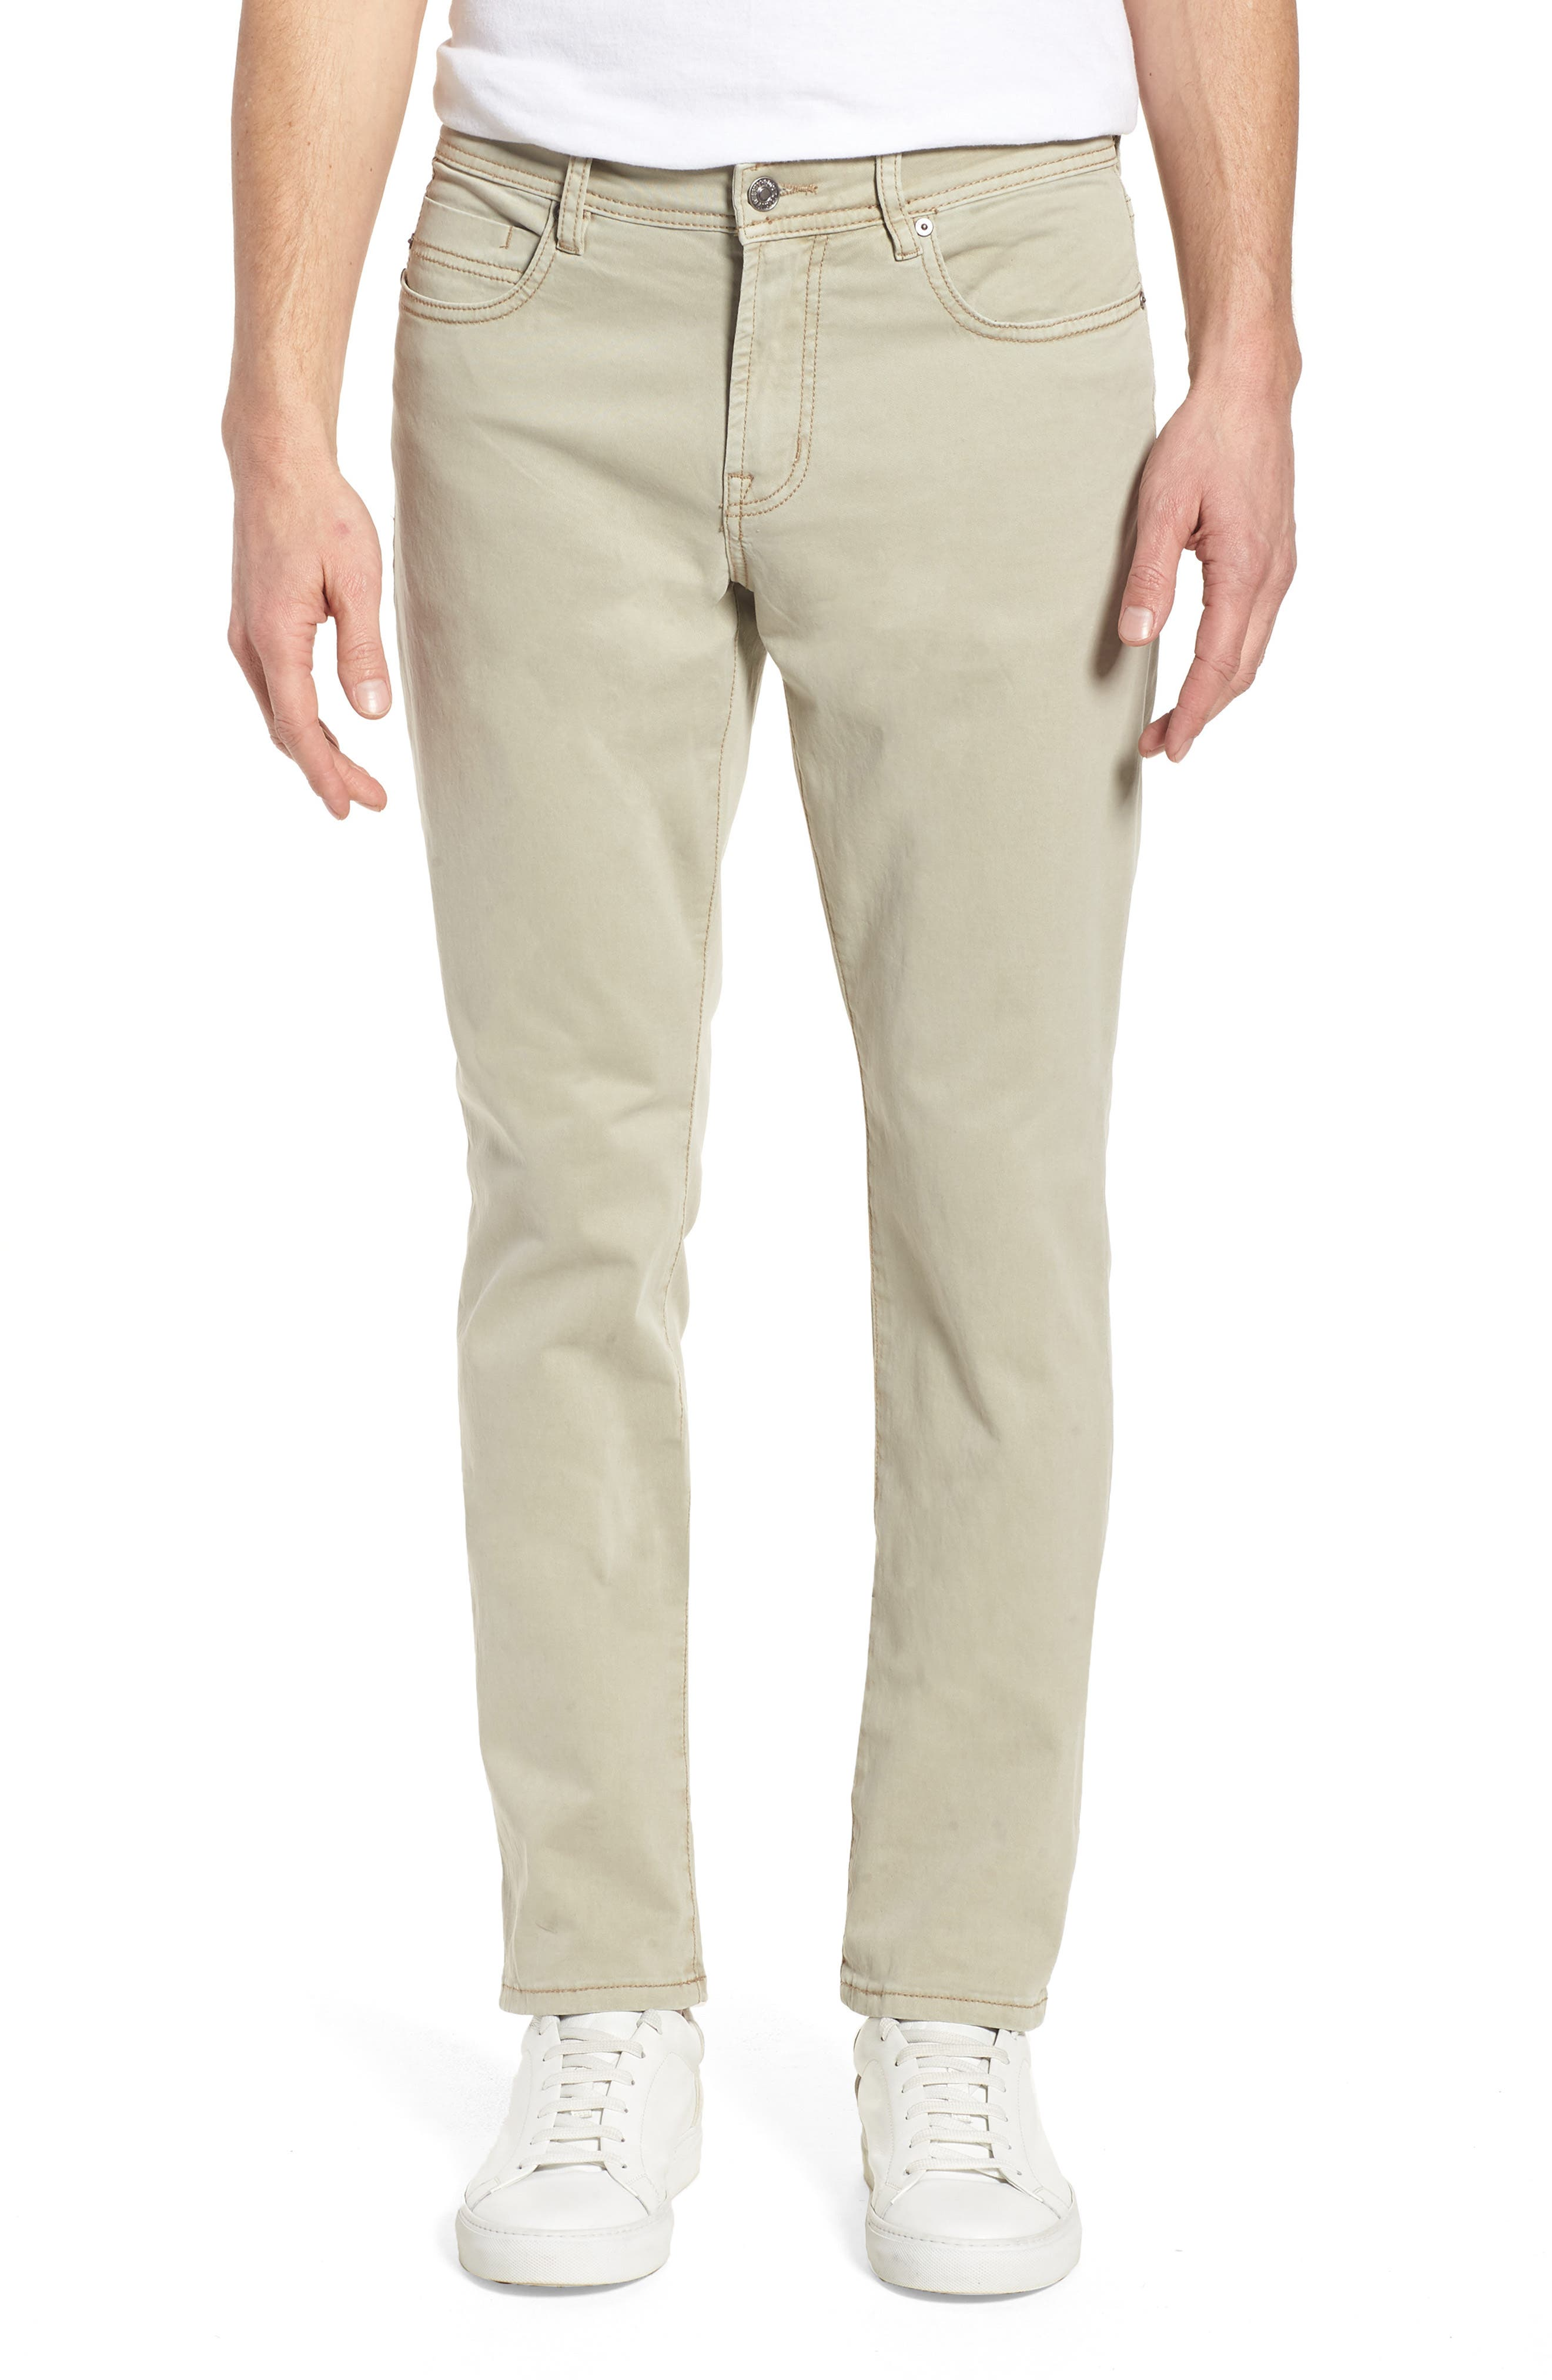 Jeans Co. Slim Straight Leg Jeans,                         Main,                         color, Sandstrom